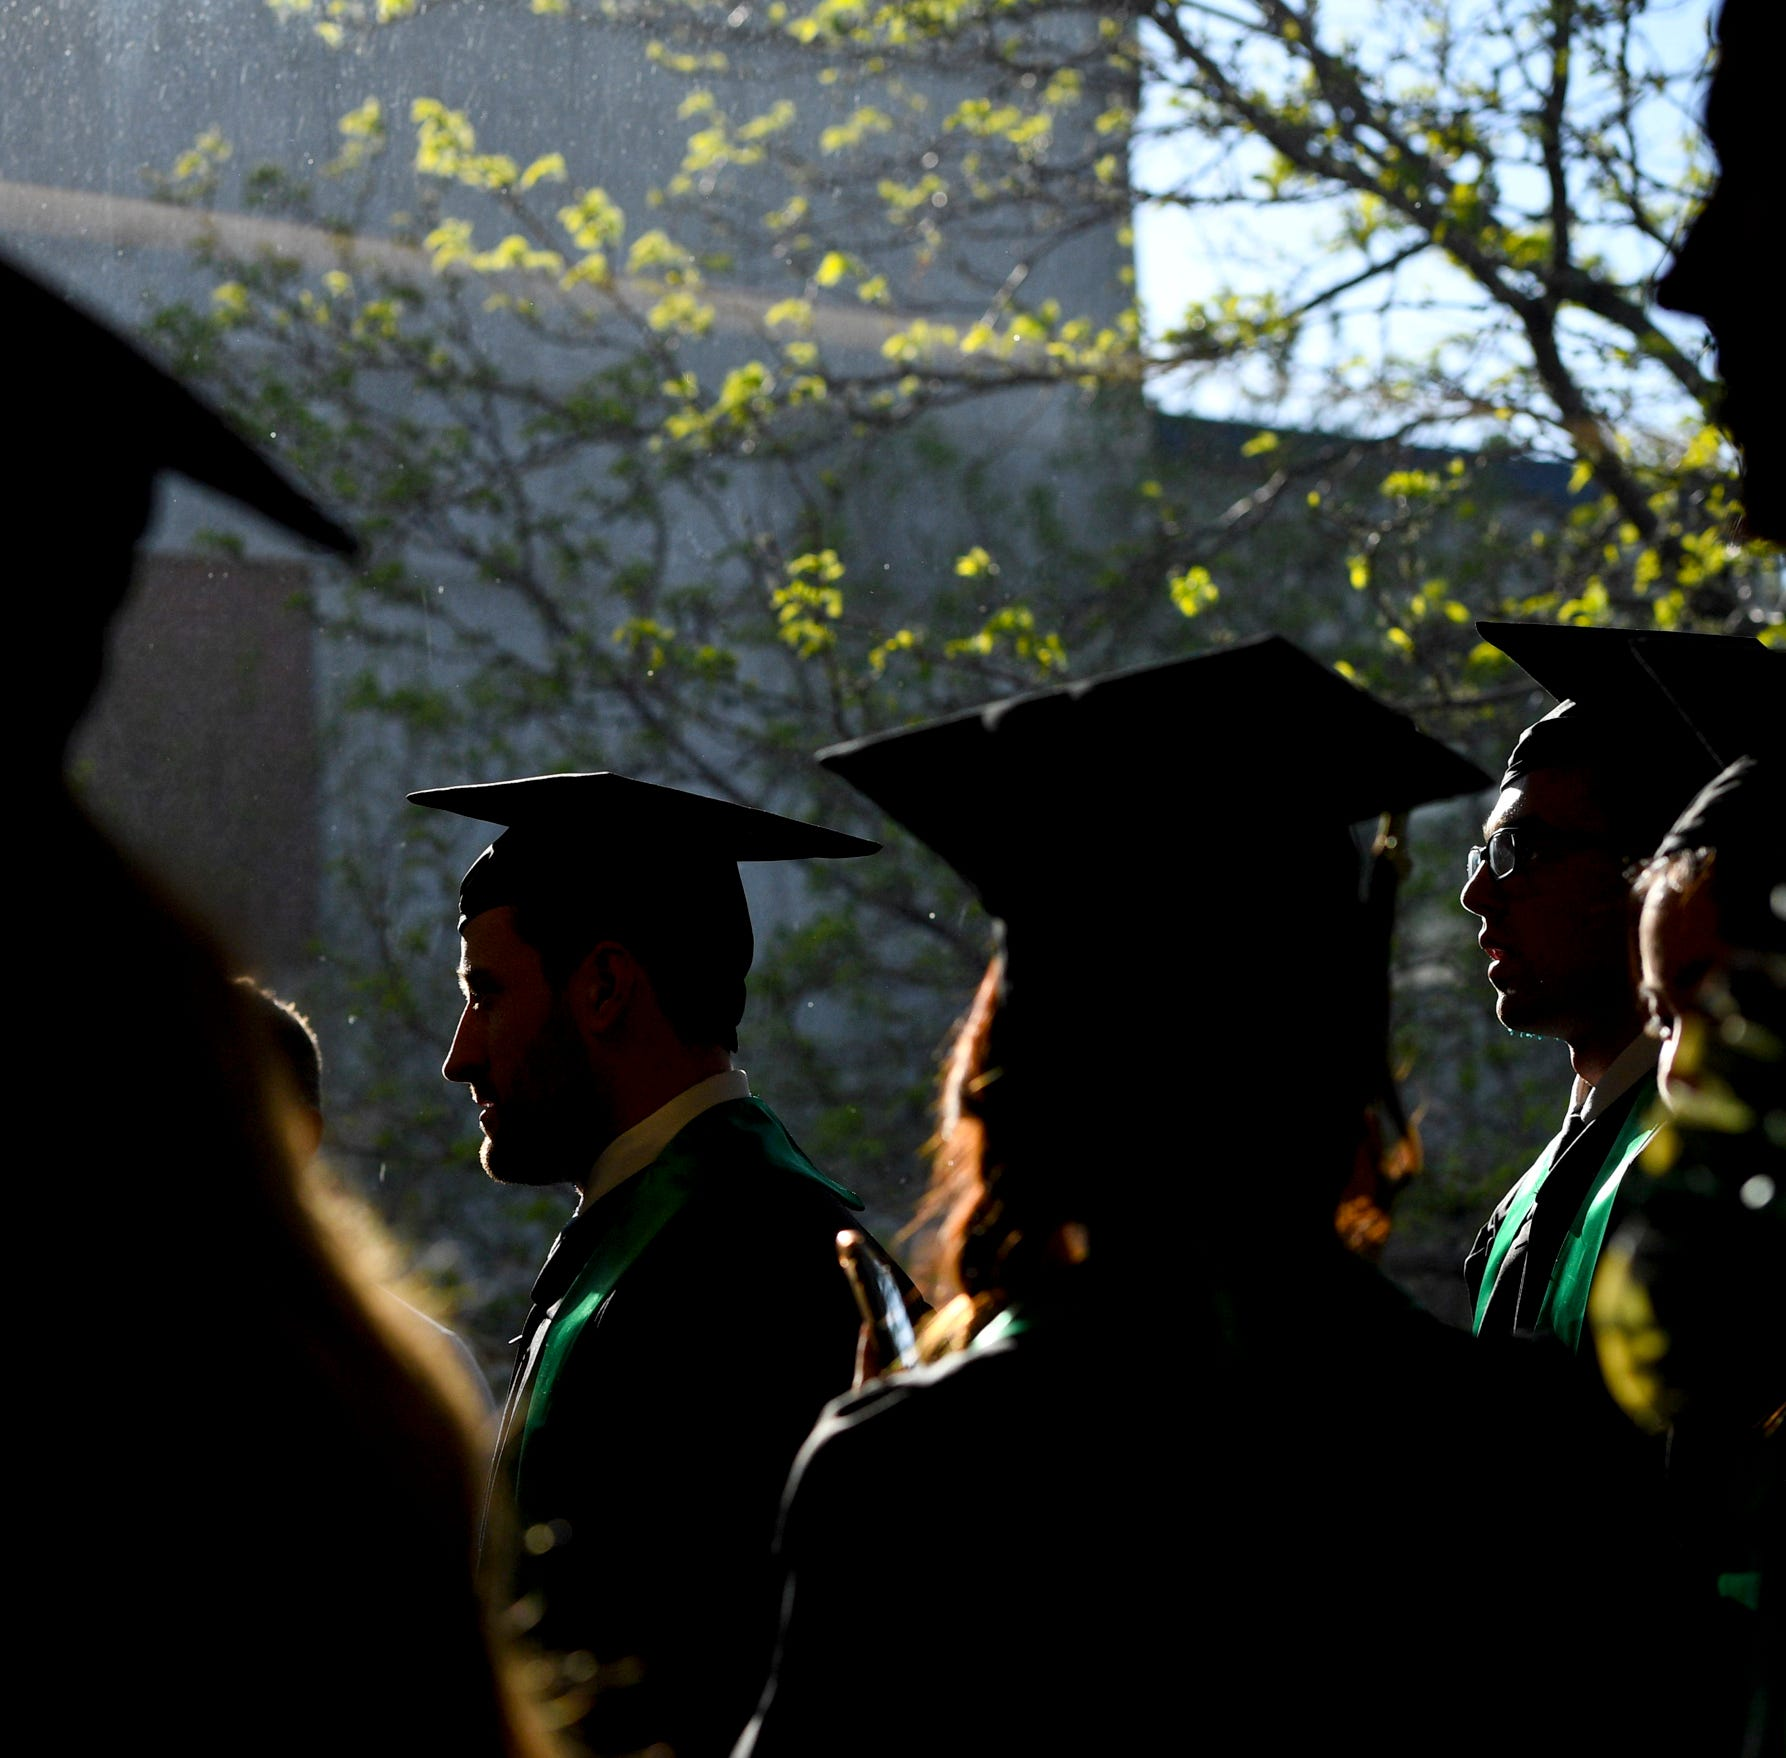 A college graduation season truth: Liberal arts degrees are valuable and practical